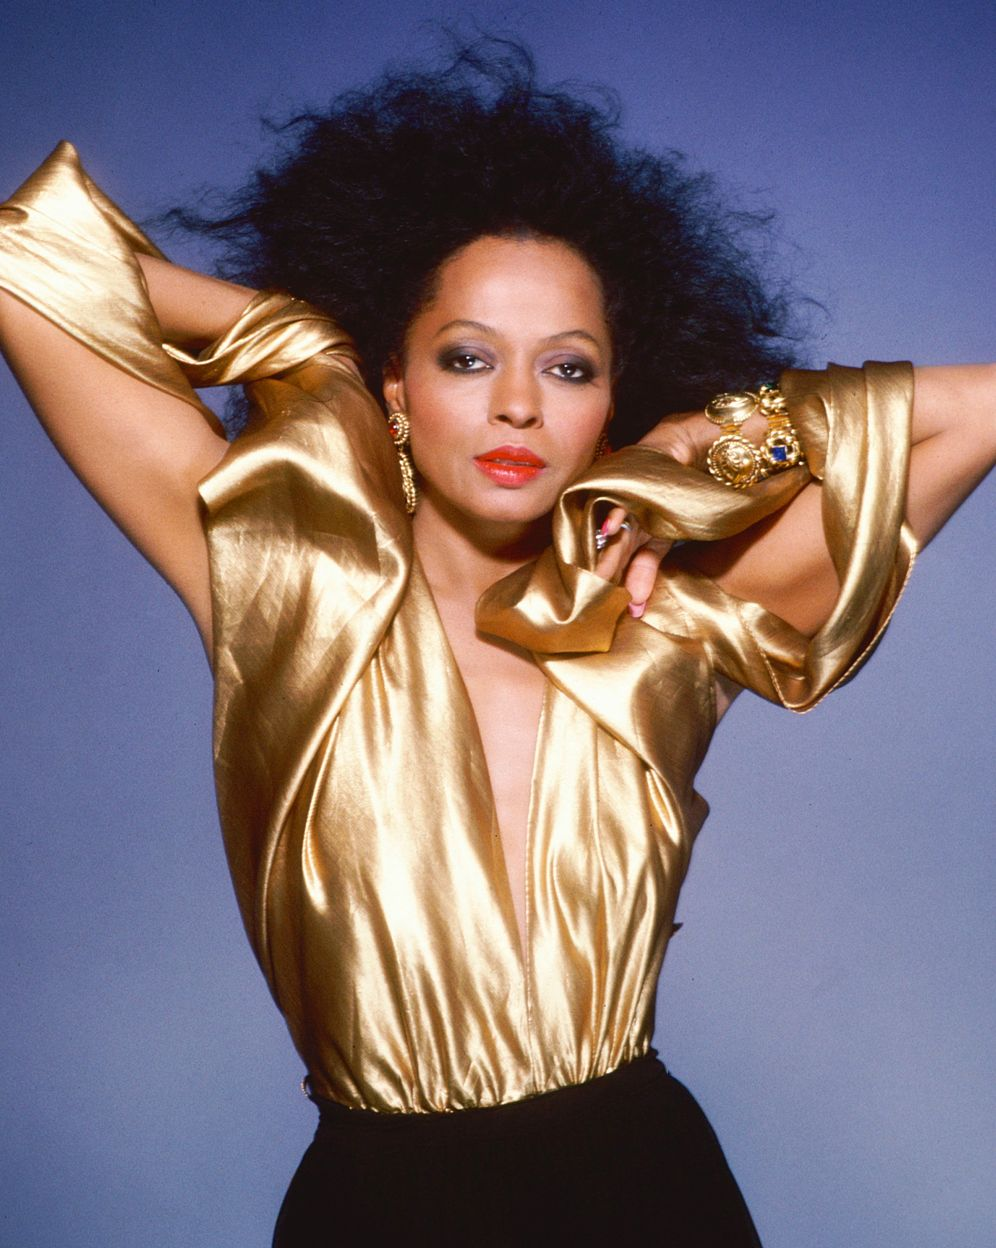 diana ross i hope i can pull this off my costume for halloween this year will be the amazing diana ross